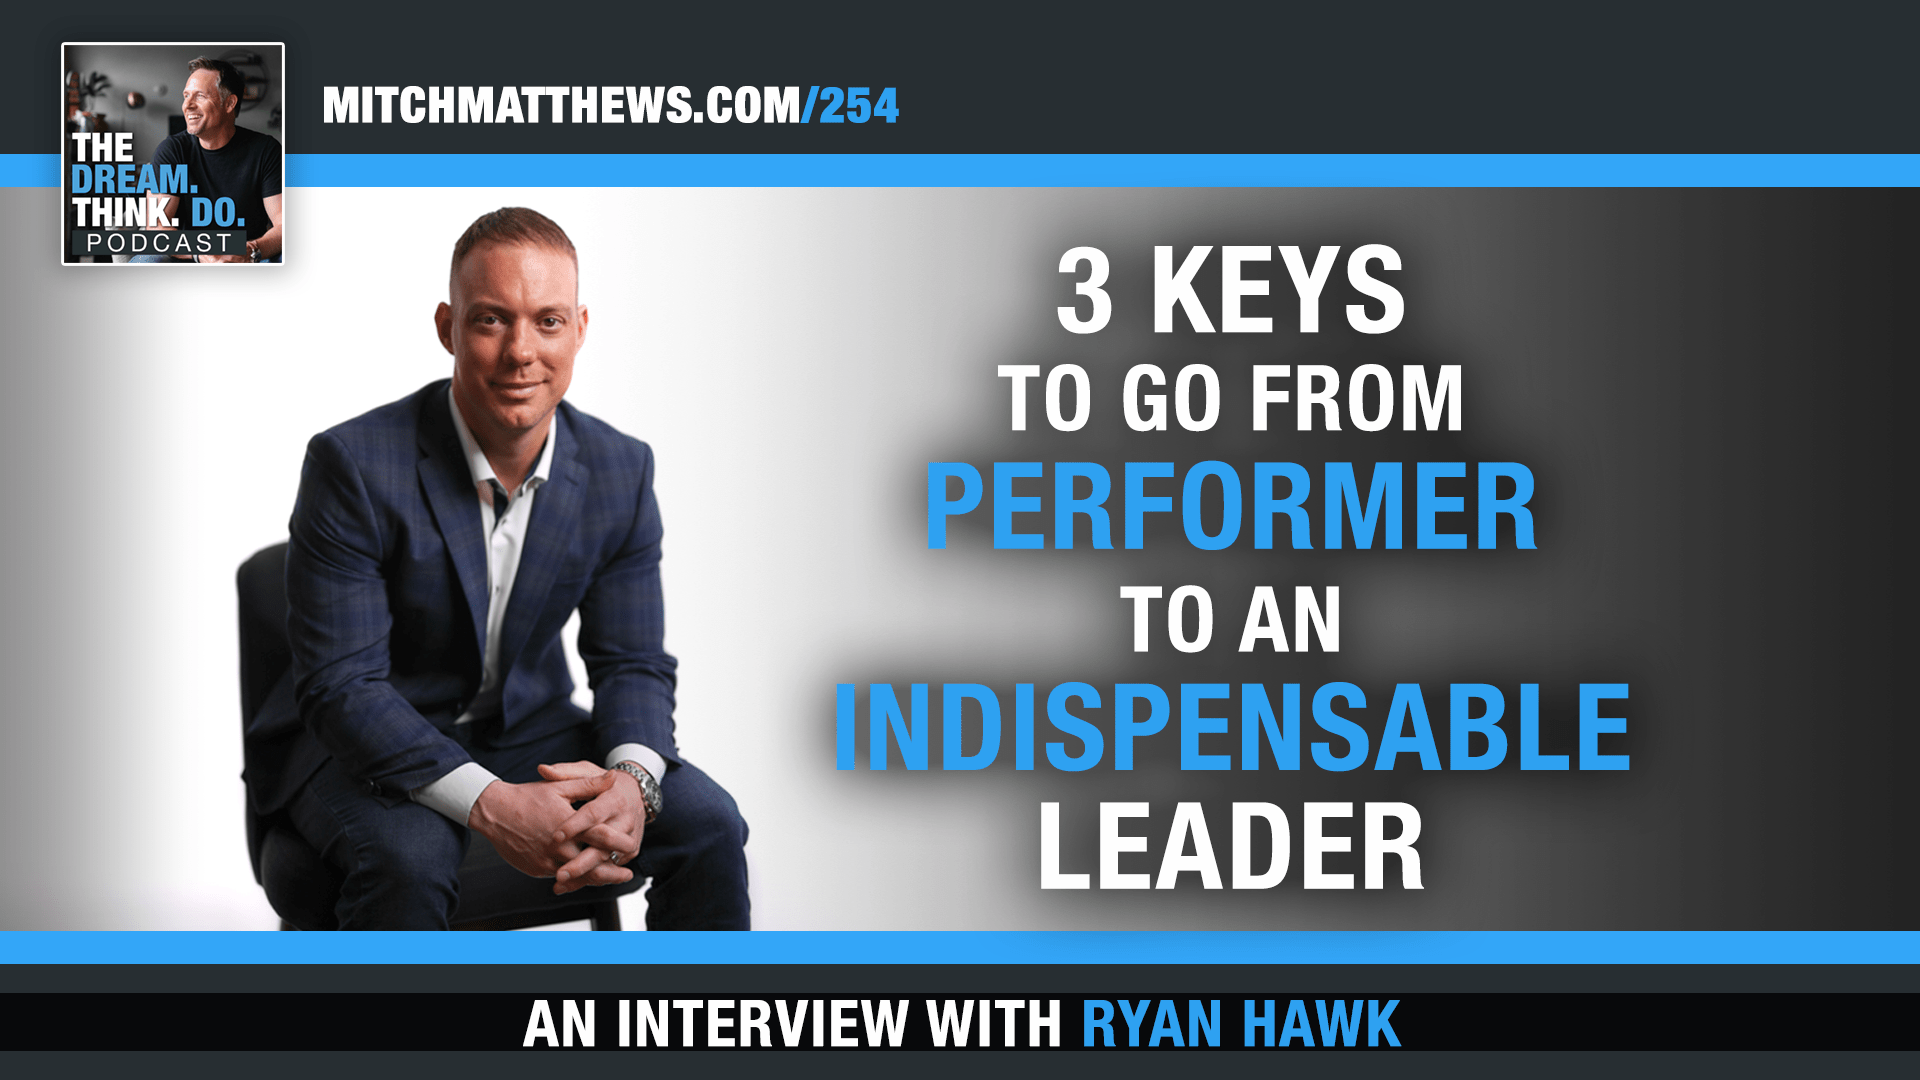 Ryan Hawk interview with Mitch Matthews